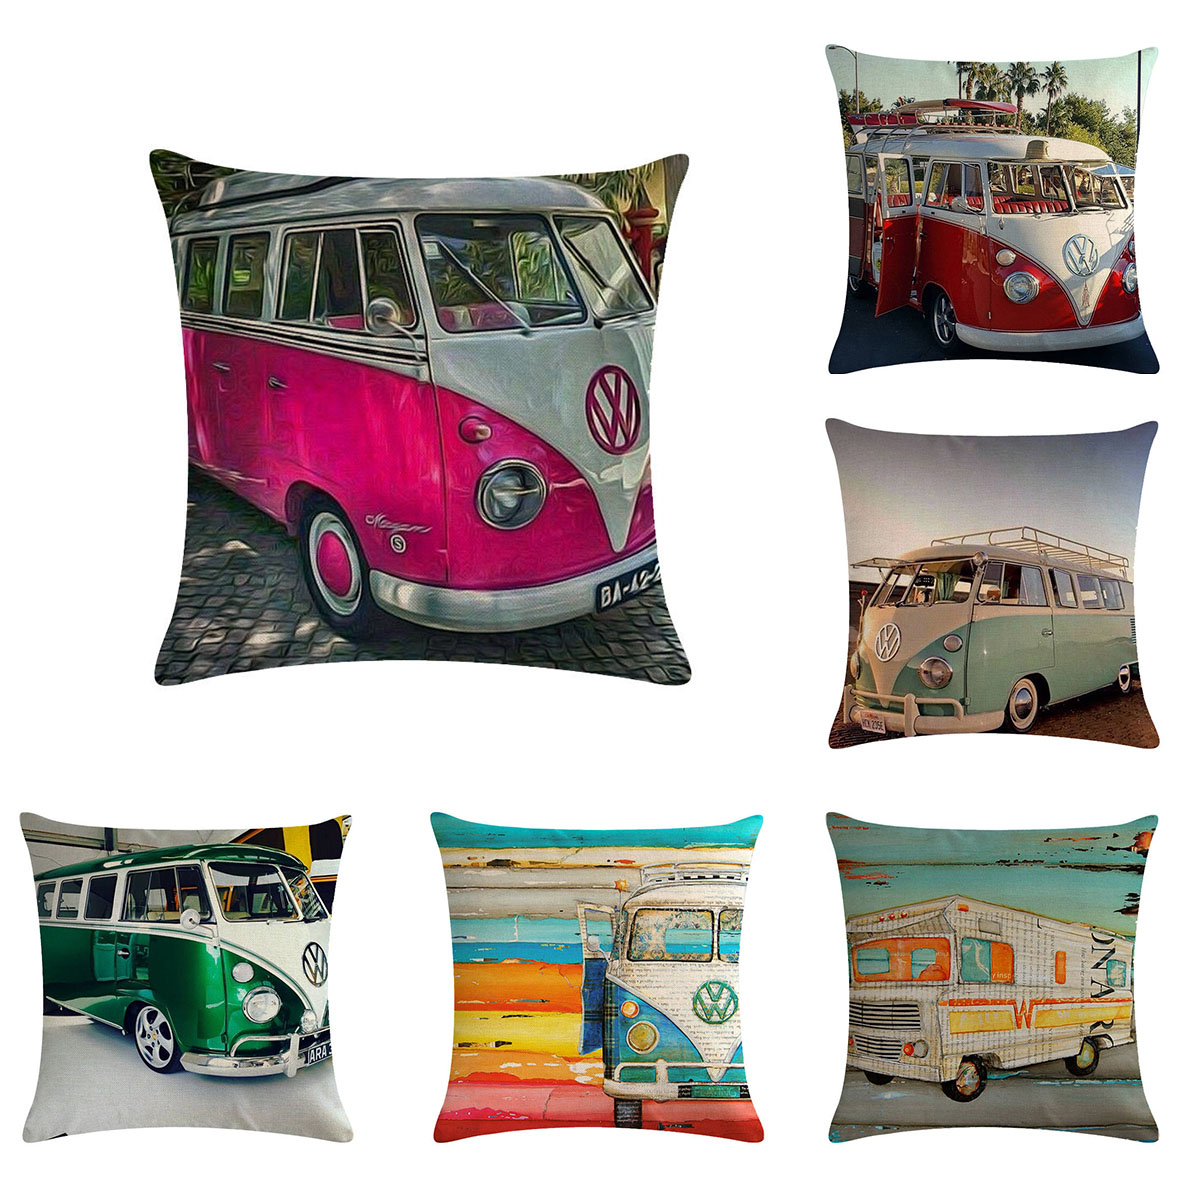 Cushion Covers 45cm*45cm Retro Volkswagen Bus Design Linen/cotton Throw Pillow Covers Couch Cushion Cover Home Decorative Pillow